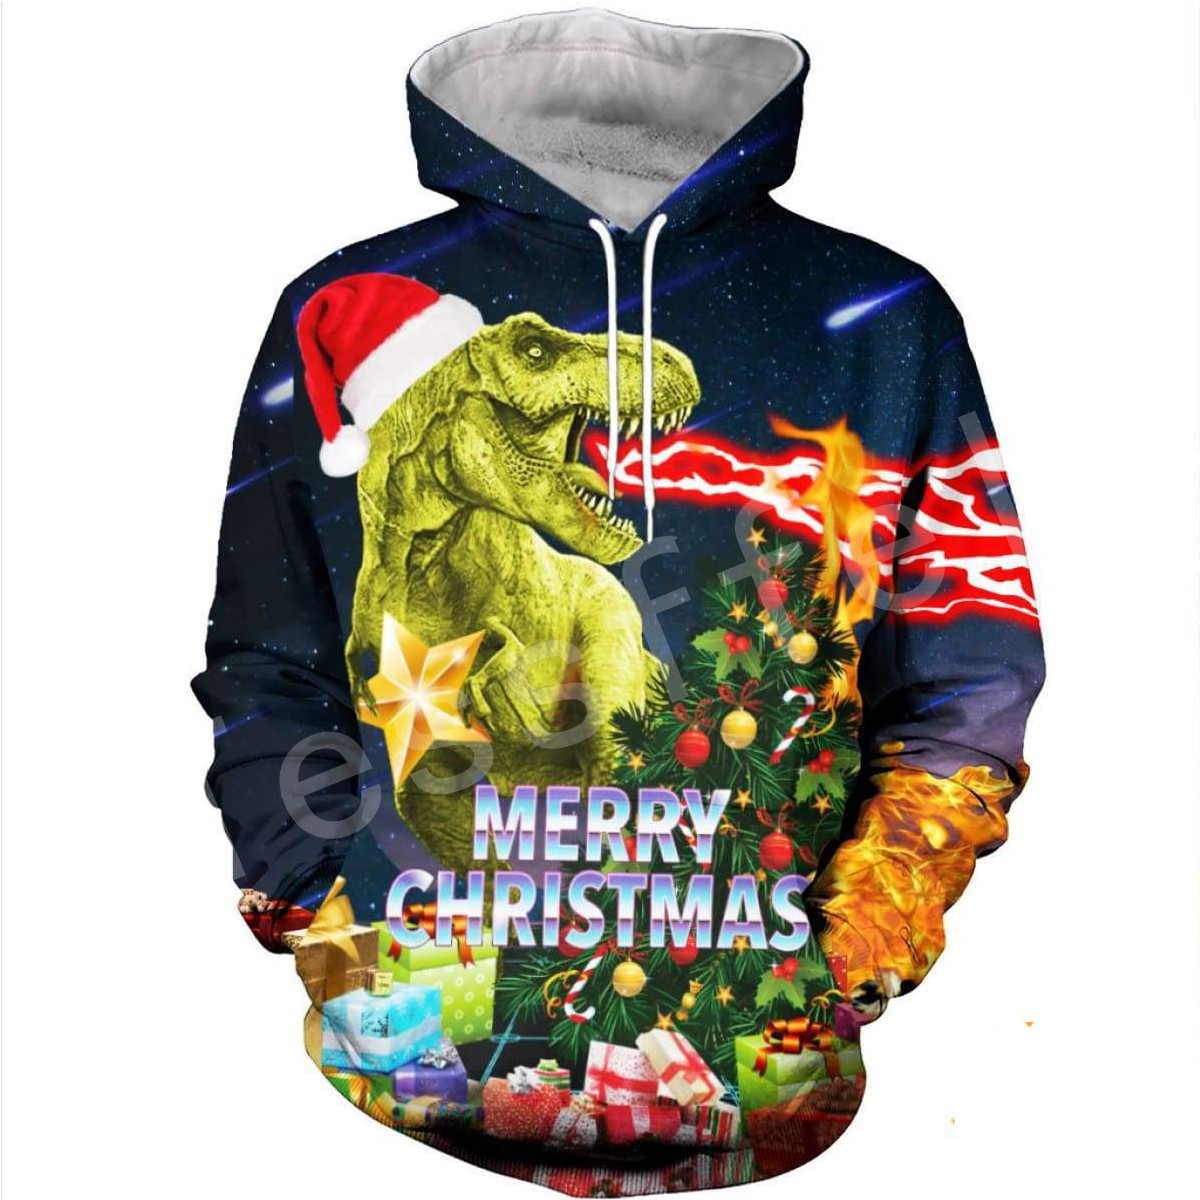 Tessffel Santa Claus Christmas Colorful Men/Women 3D Full Print Sweatshirts/Hoodie/shirts/Jacket  Casual Colorful Funny Style-9